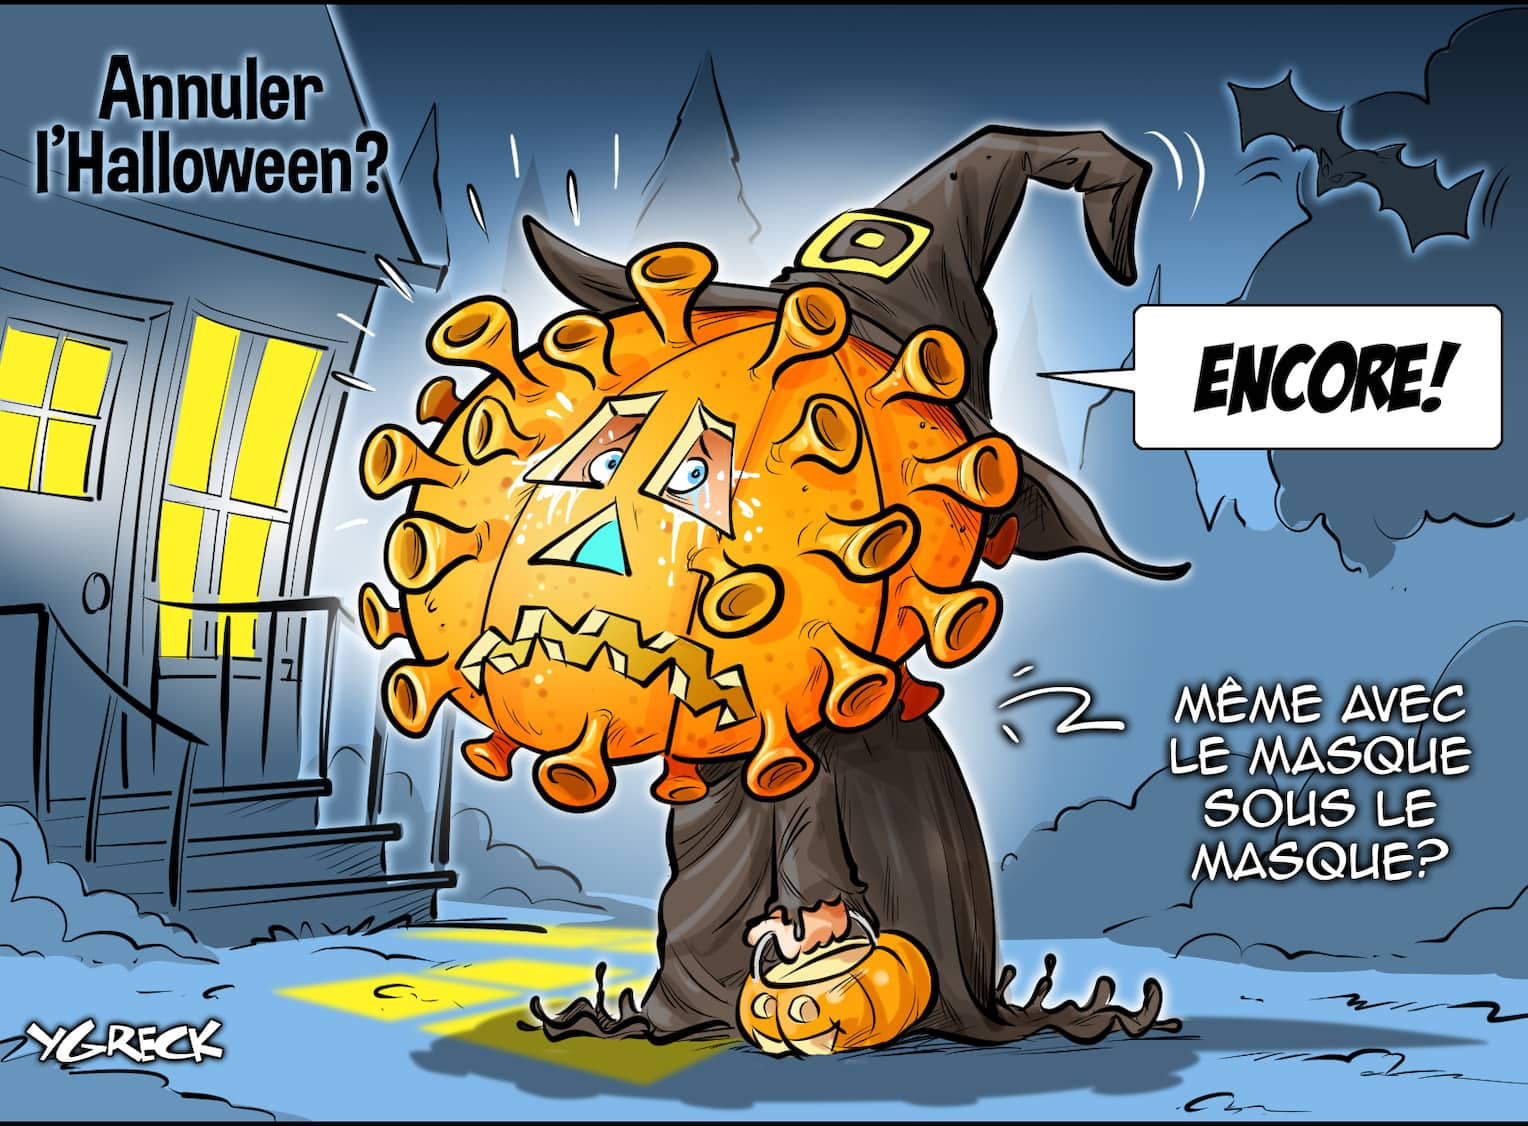 CARICATURES : politiques, judiciaires, sportives ... etc.    (suite 2) - Page 12 Halloween_covidee64f895-527f-4cd1-b84f-4bbd4c475996_ORIGINAL